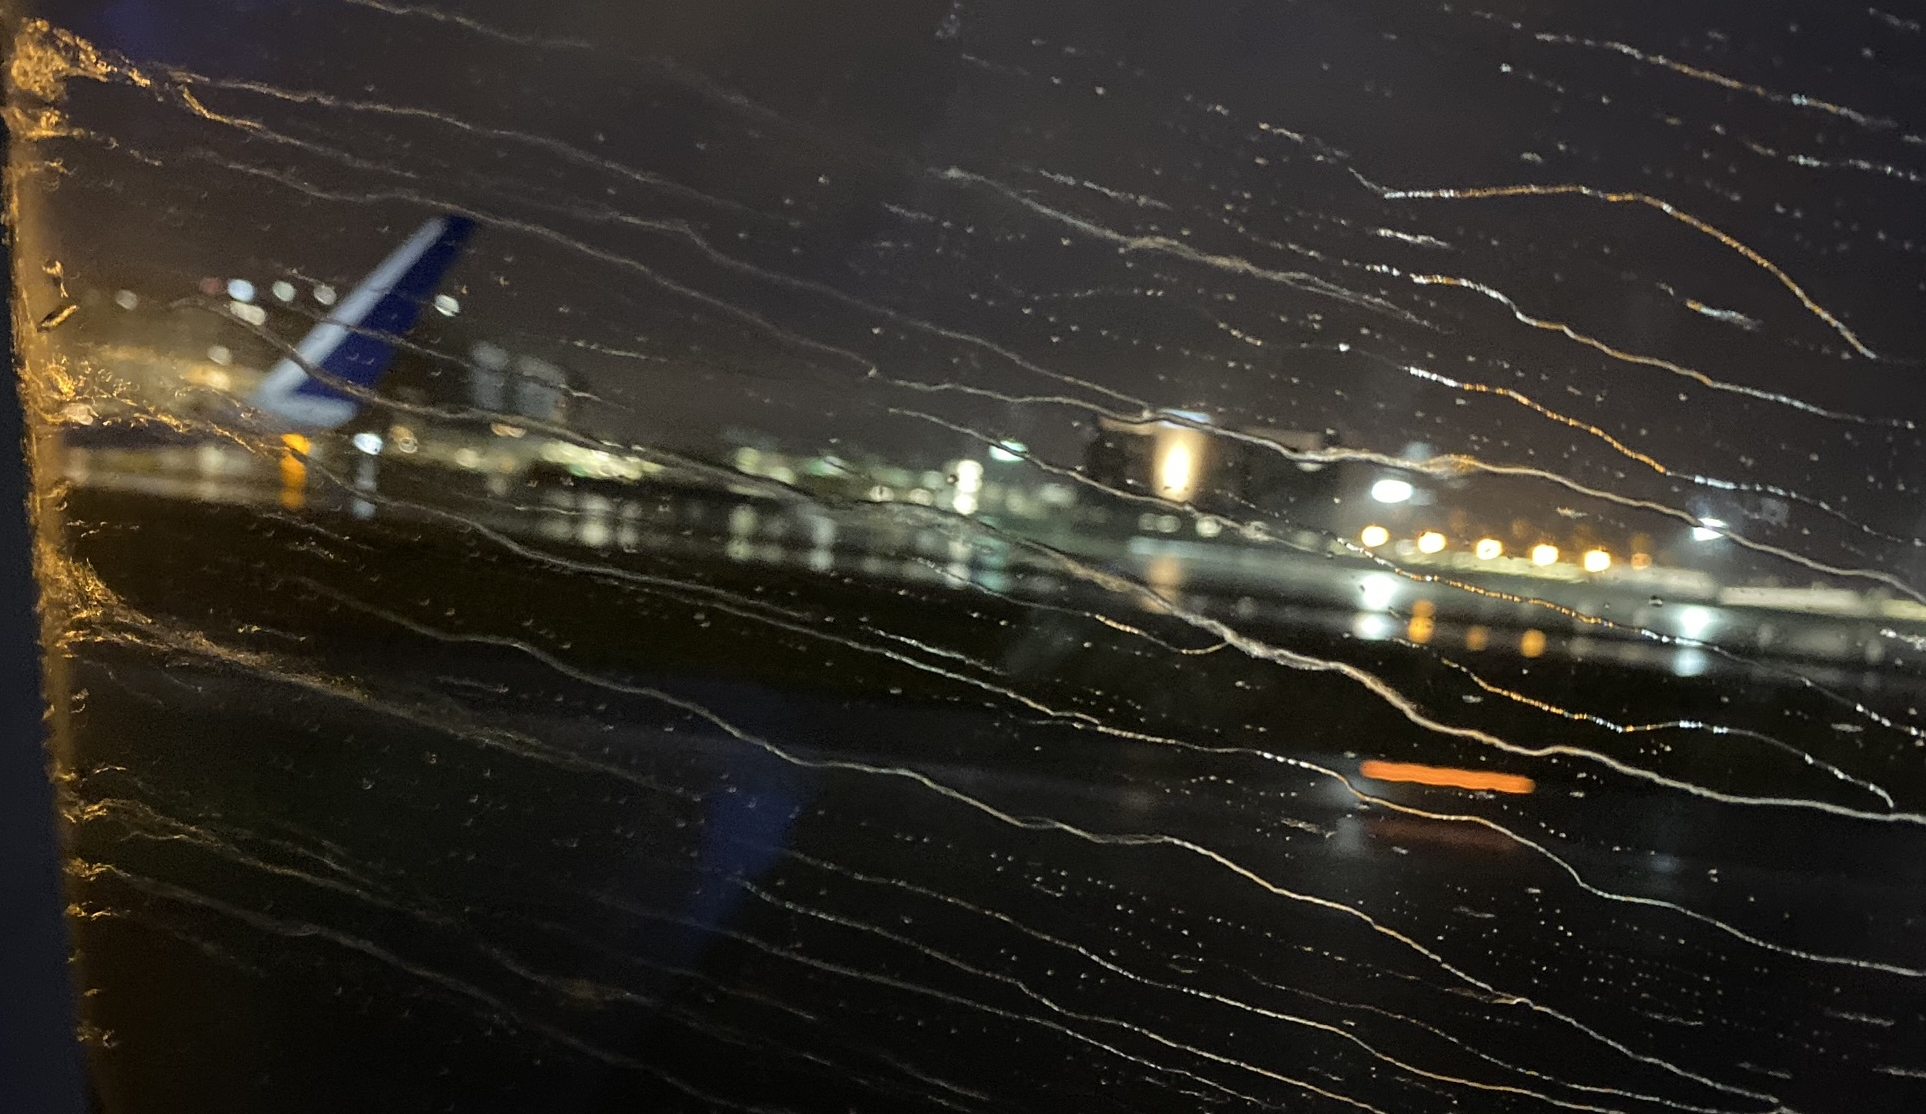 Takeoff in the early morning at MSP